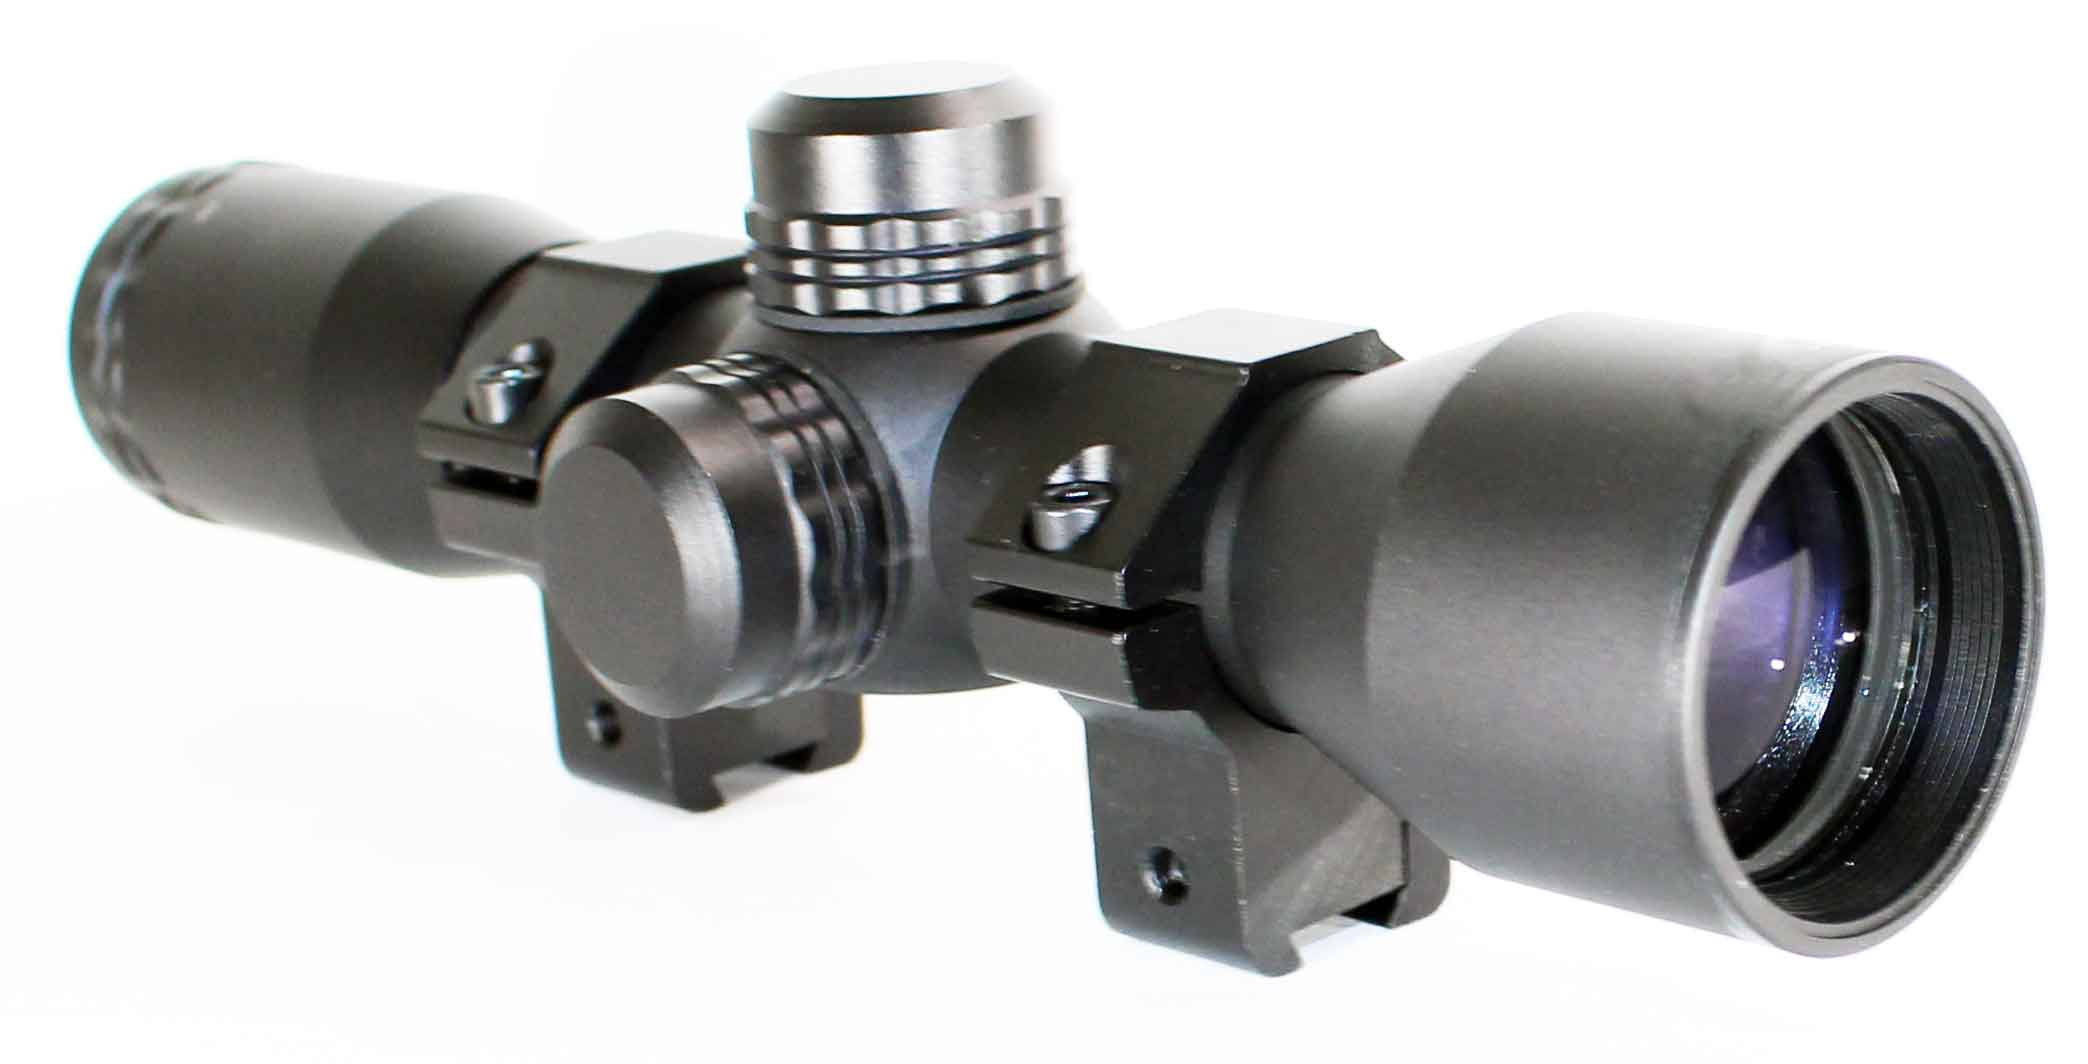 TRINITY HUNTING 4X32 SCOPE For Gamo Whisper Silent Cat Air Rifle. by